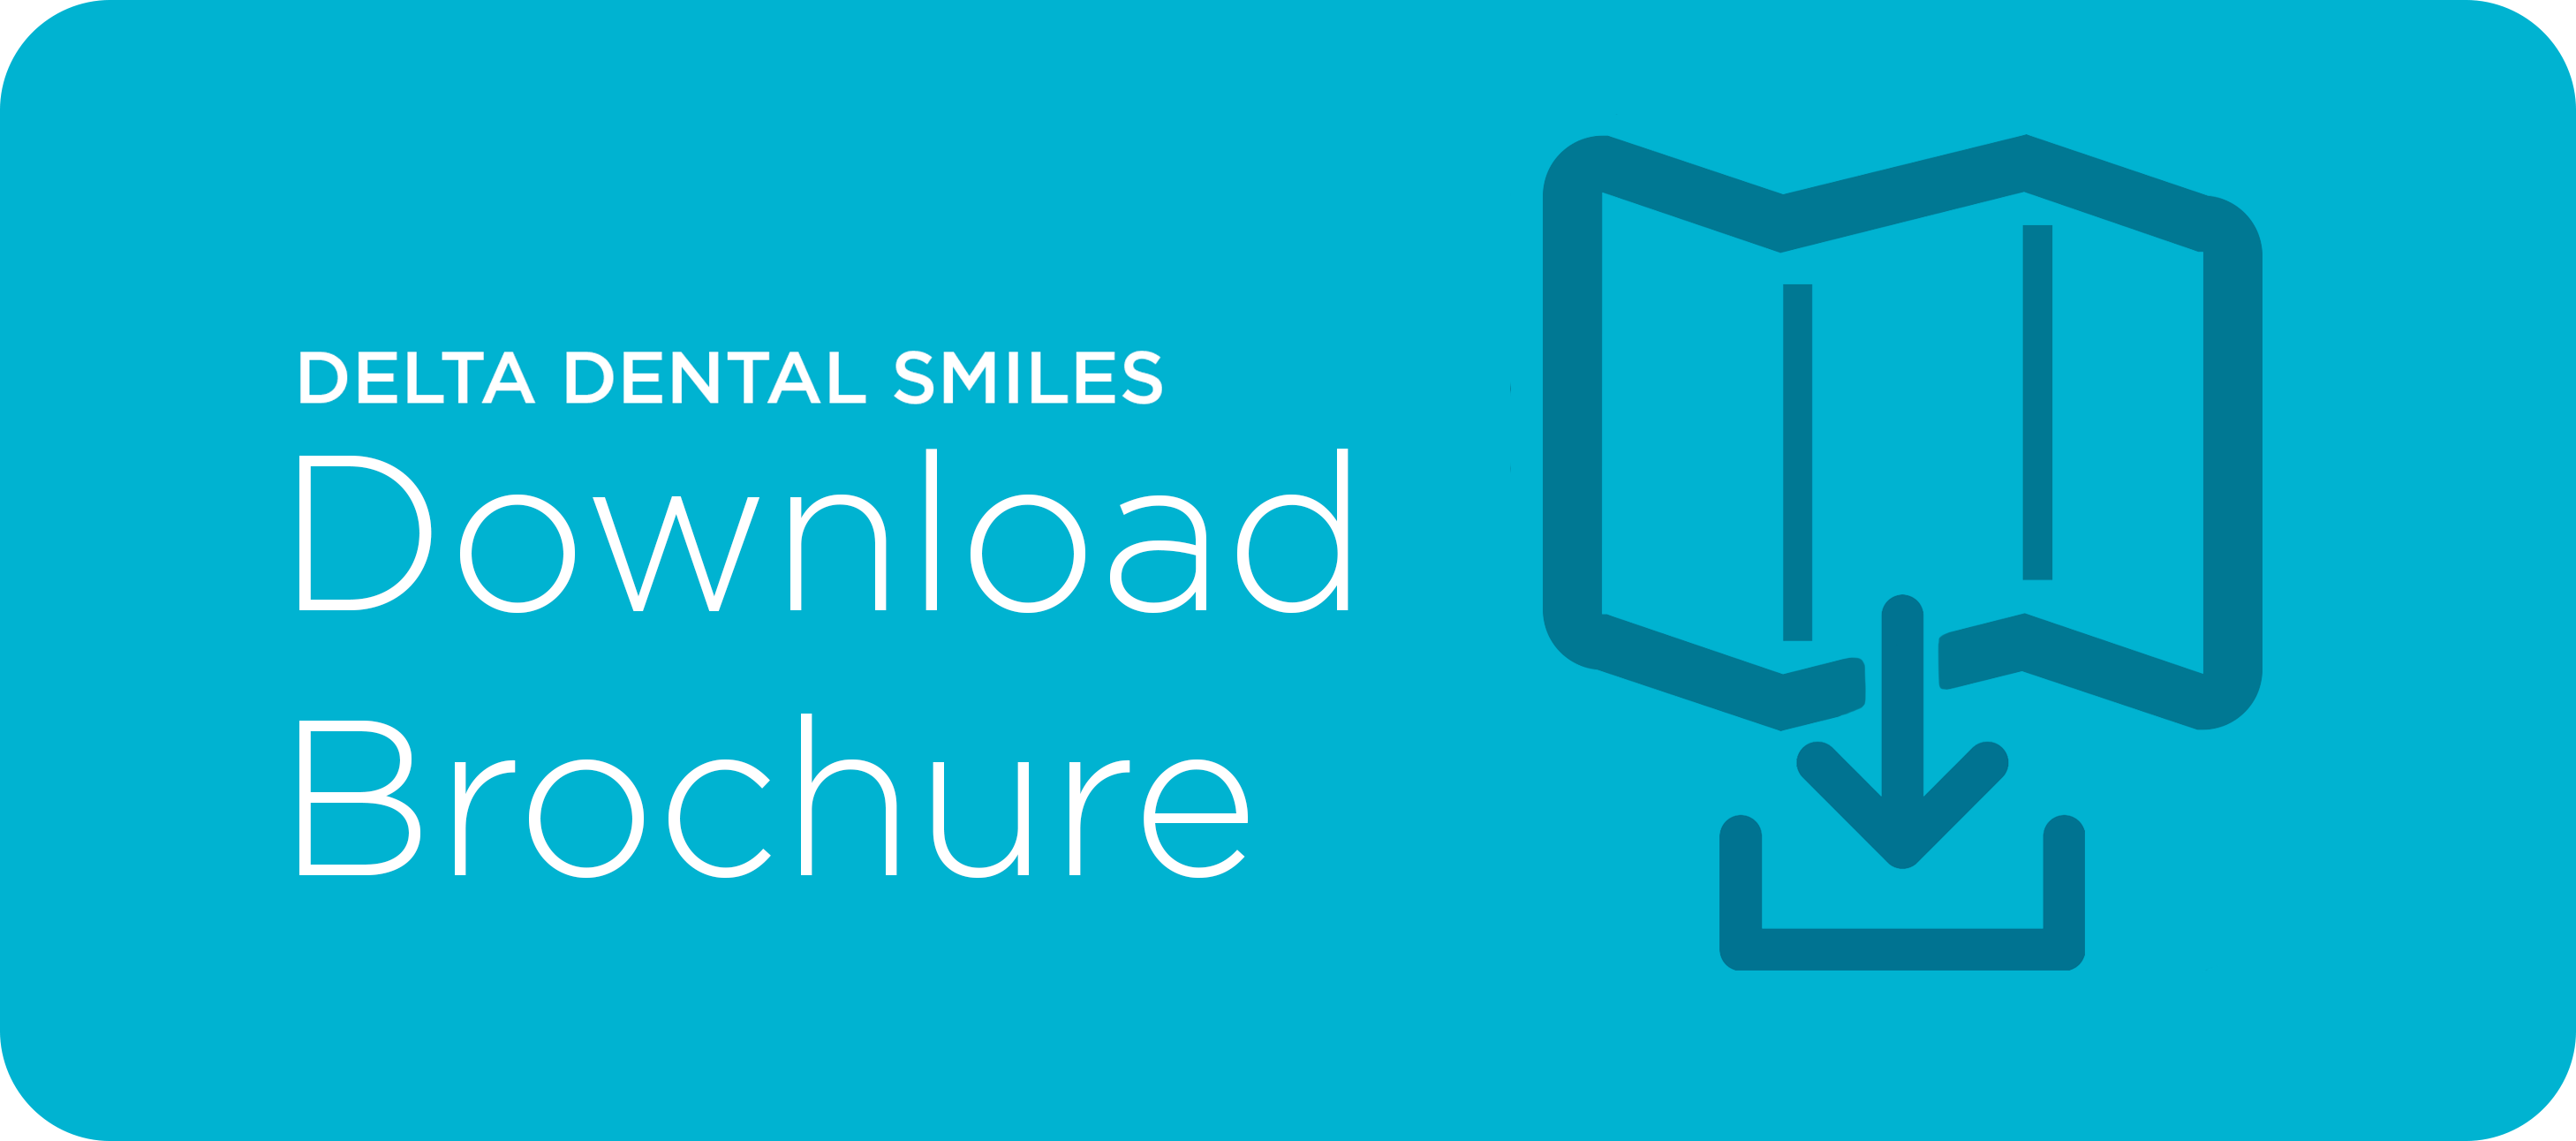 Download Delta Dental Smiles Brochure